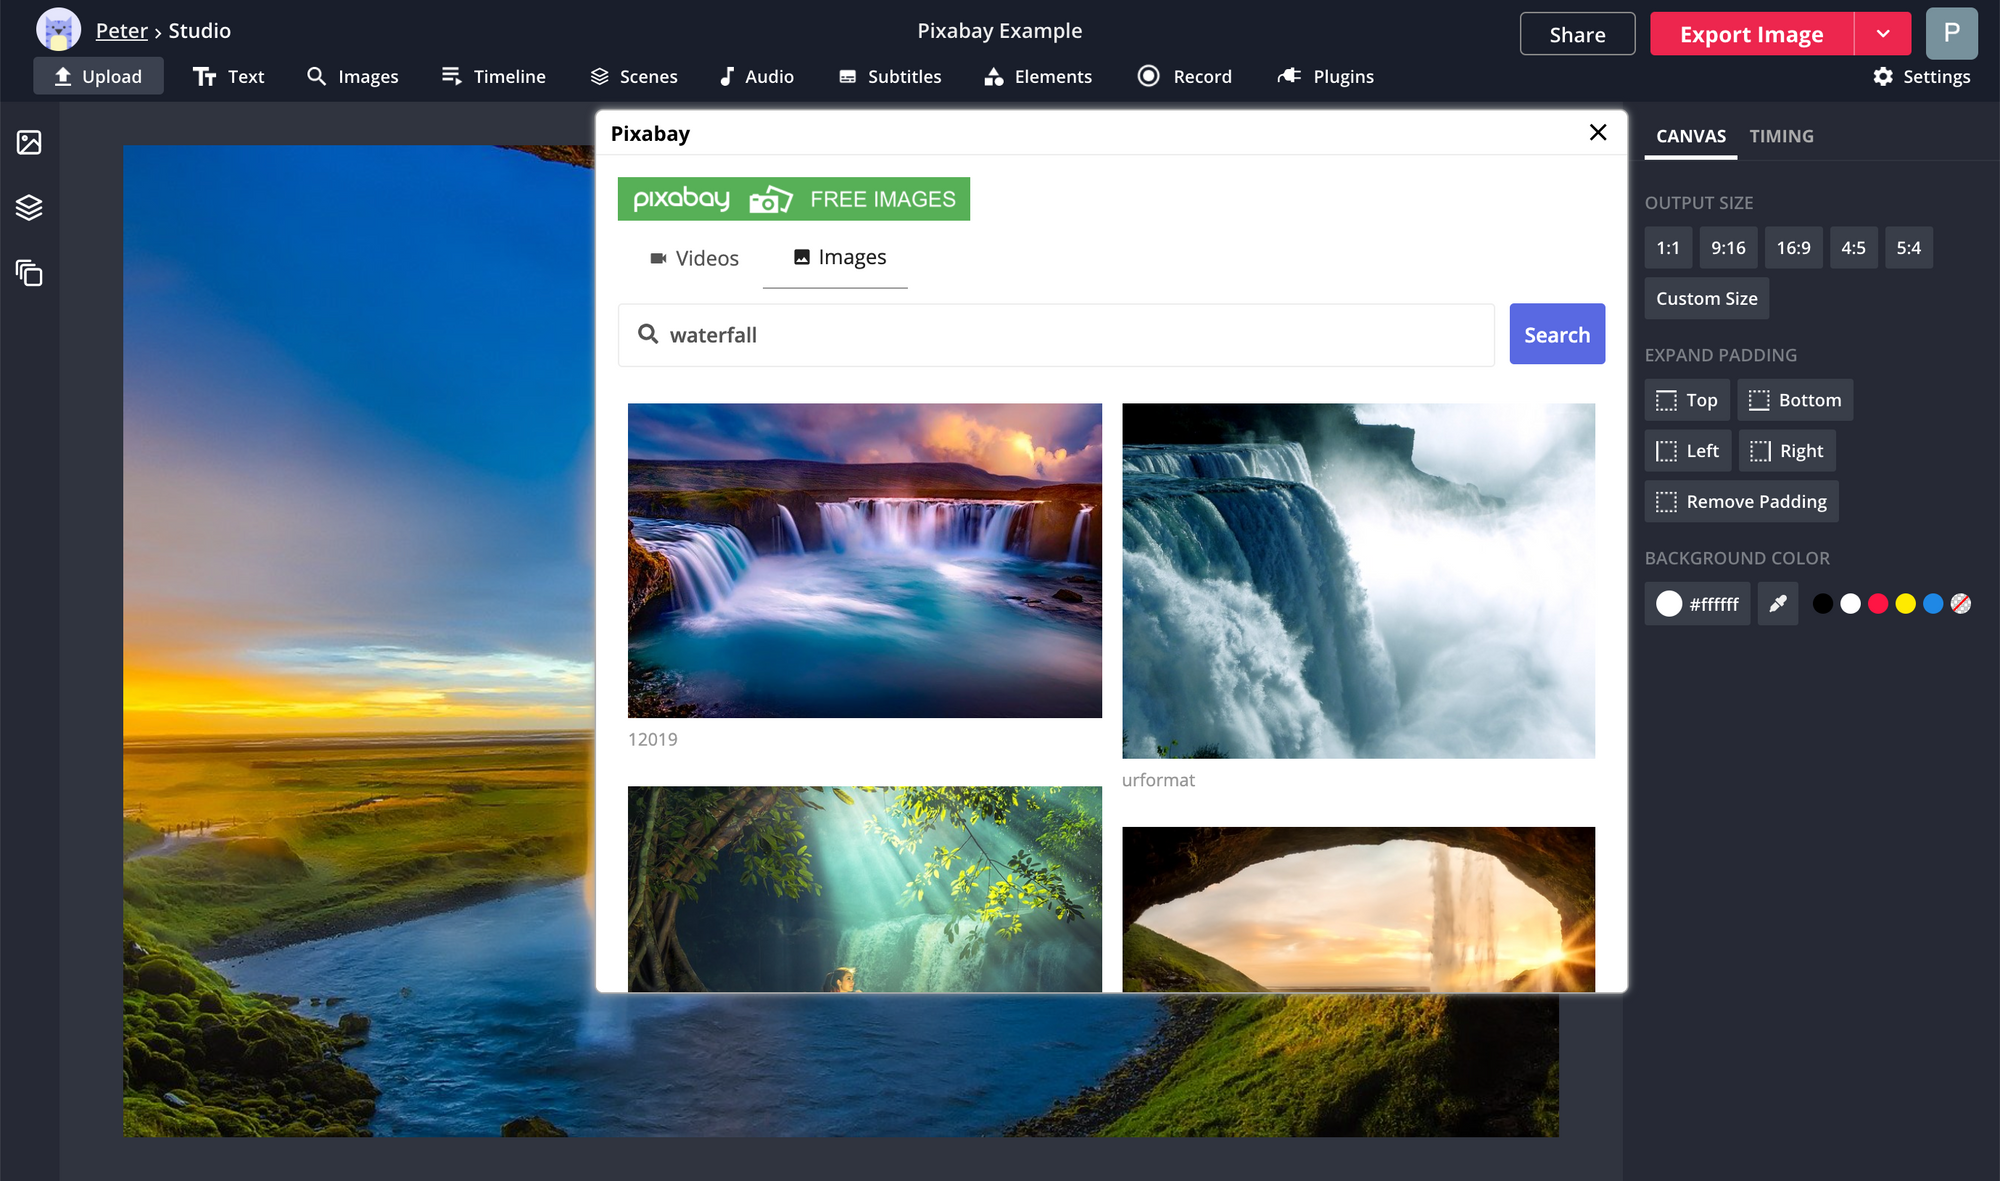 A screenshot showing how to use the Pixabay plugin in the Kapwing Studio.